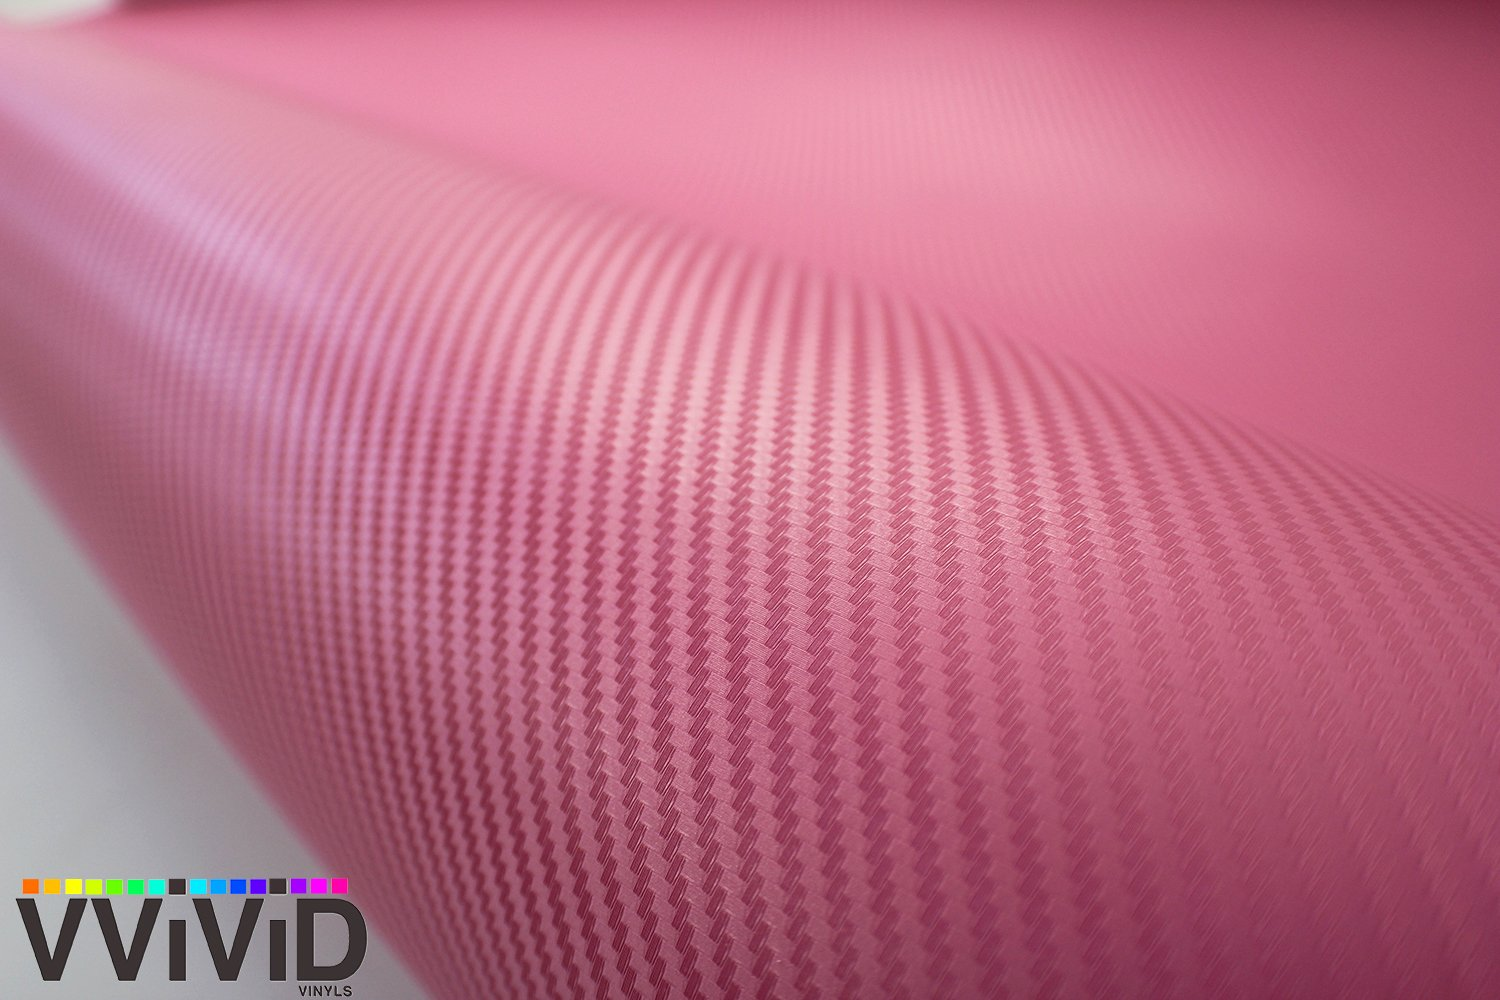 3ft x 5ft VViViD XPO Pink Carbon Fiber Car Wrap Vinyl Roll with Air Release Technology